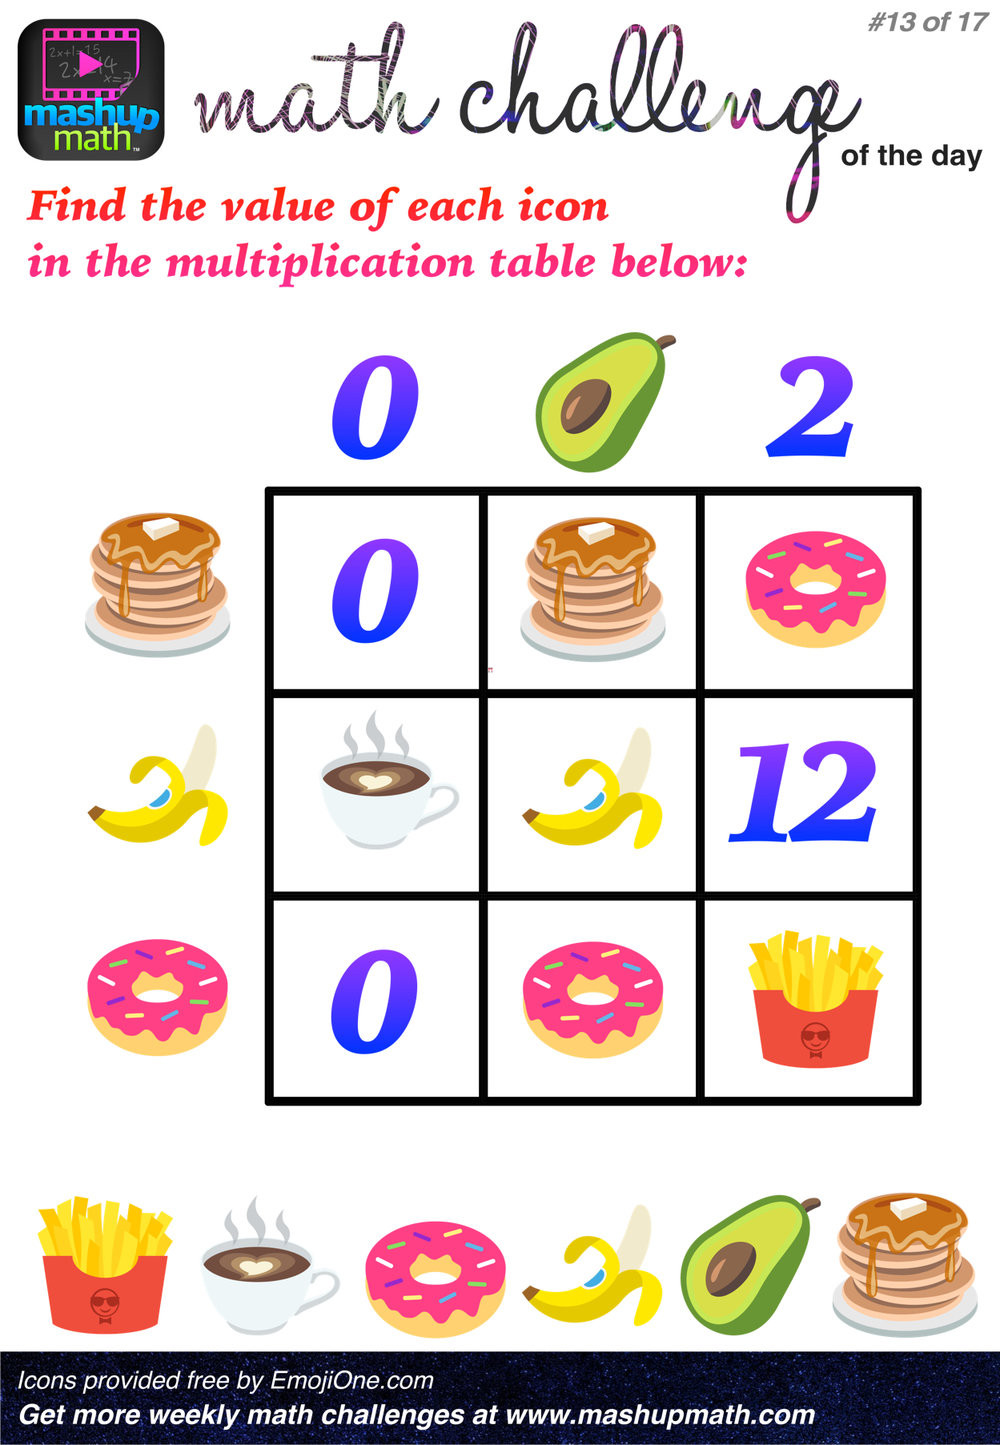 Challenge Math Worksheets are You Ready for 17 Awesome New Math Challenges — Mashup Math